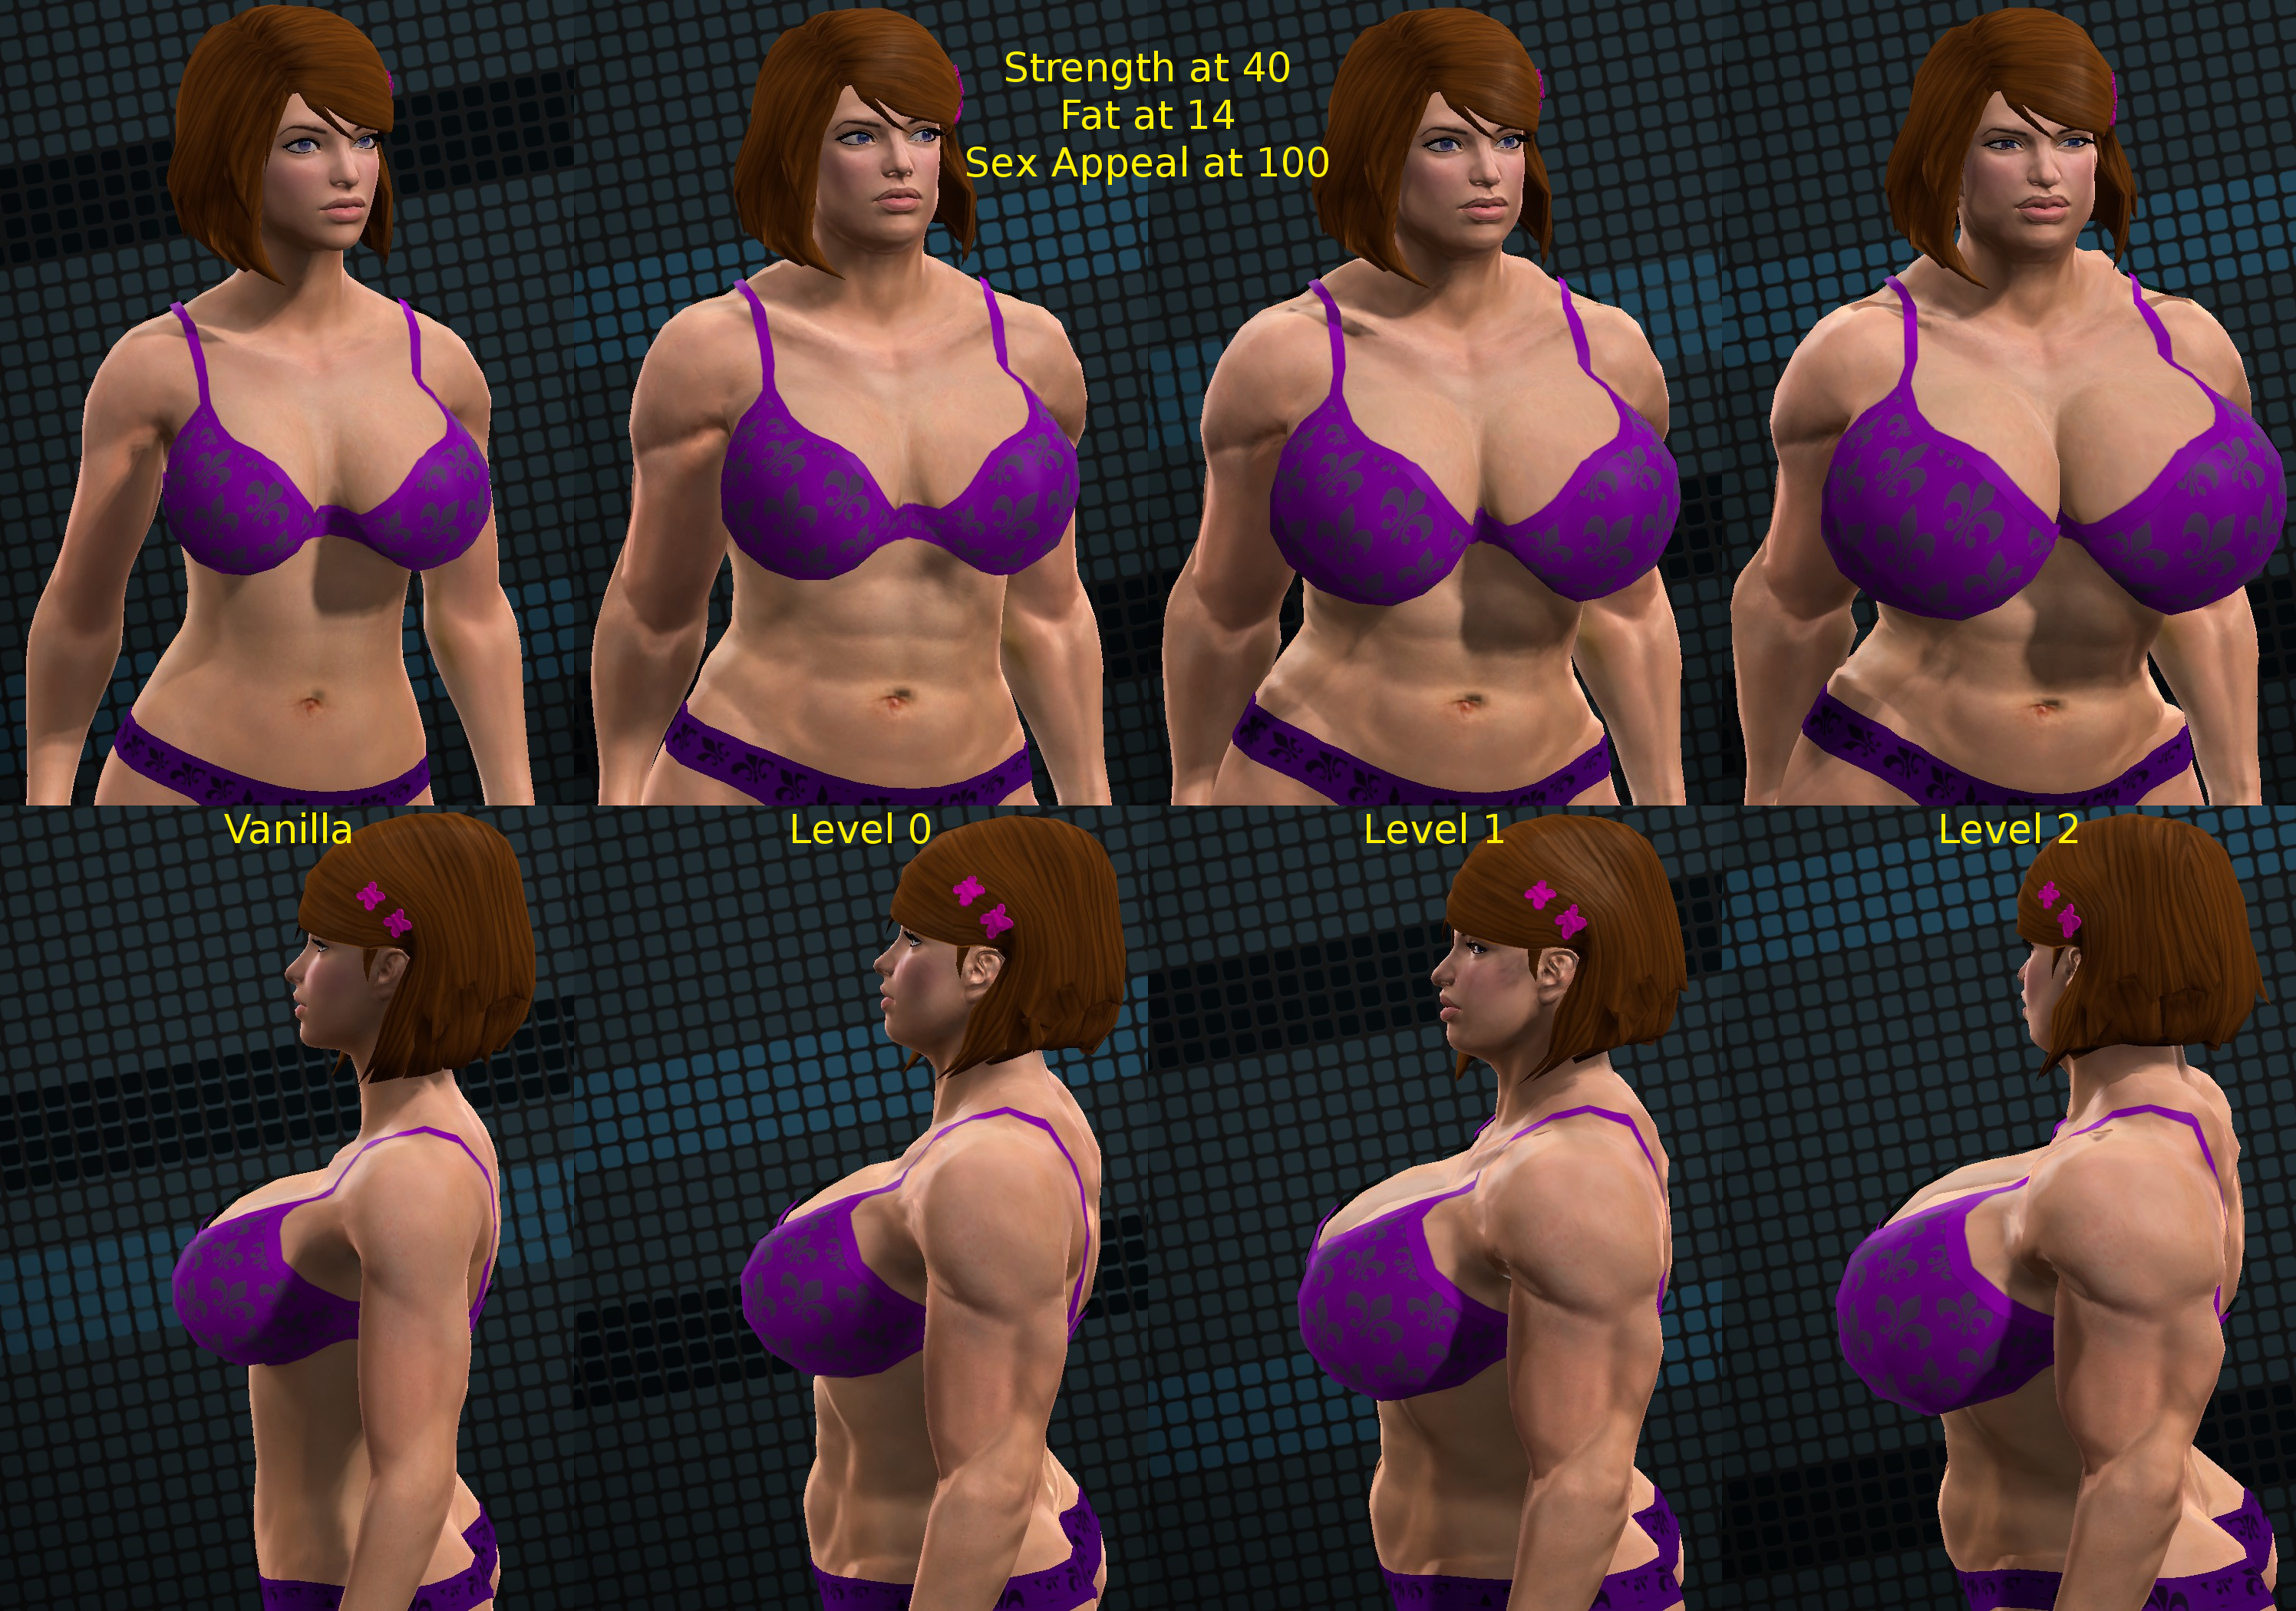 Compare strength 40 fat 14 sex 100.png